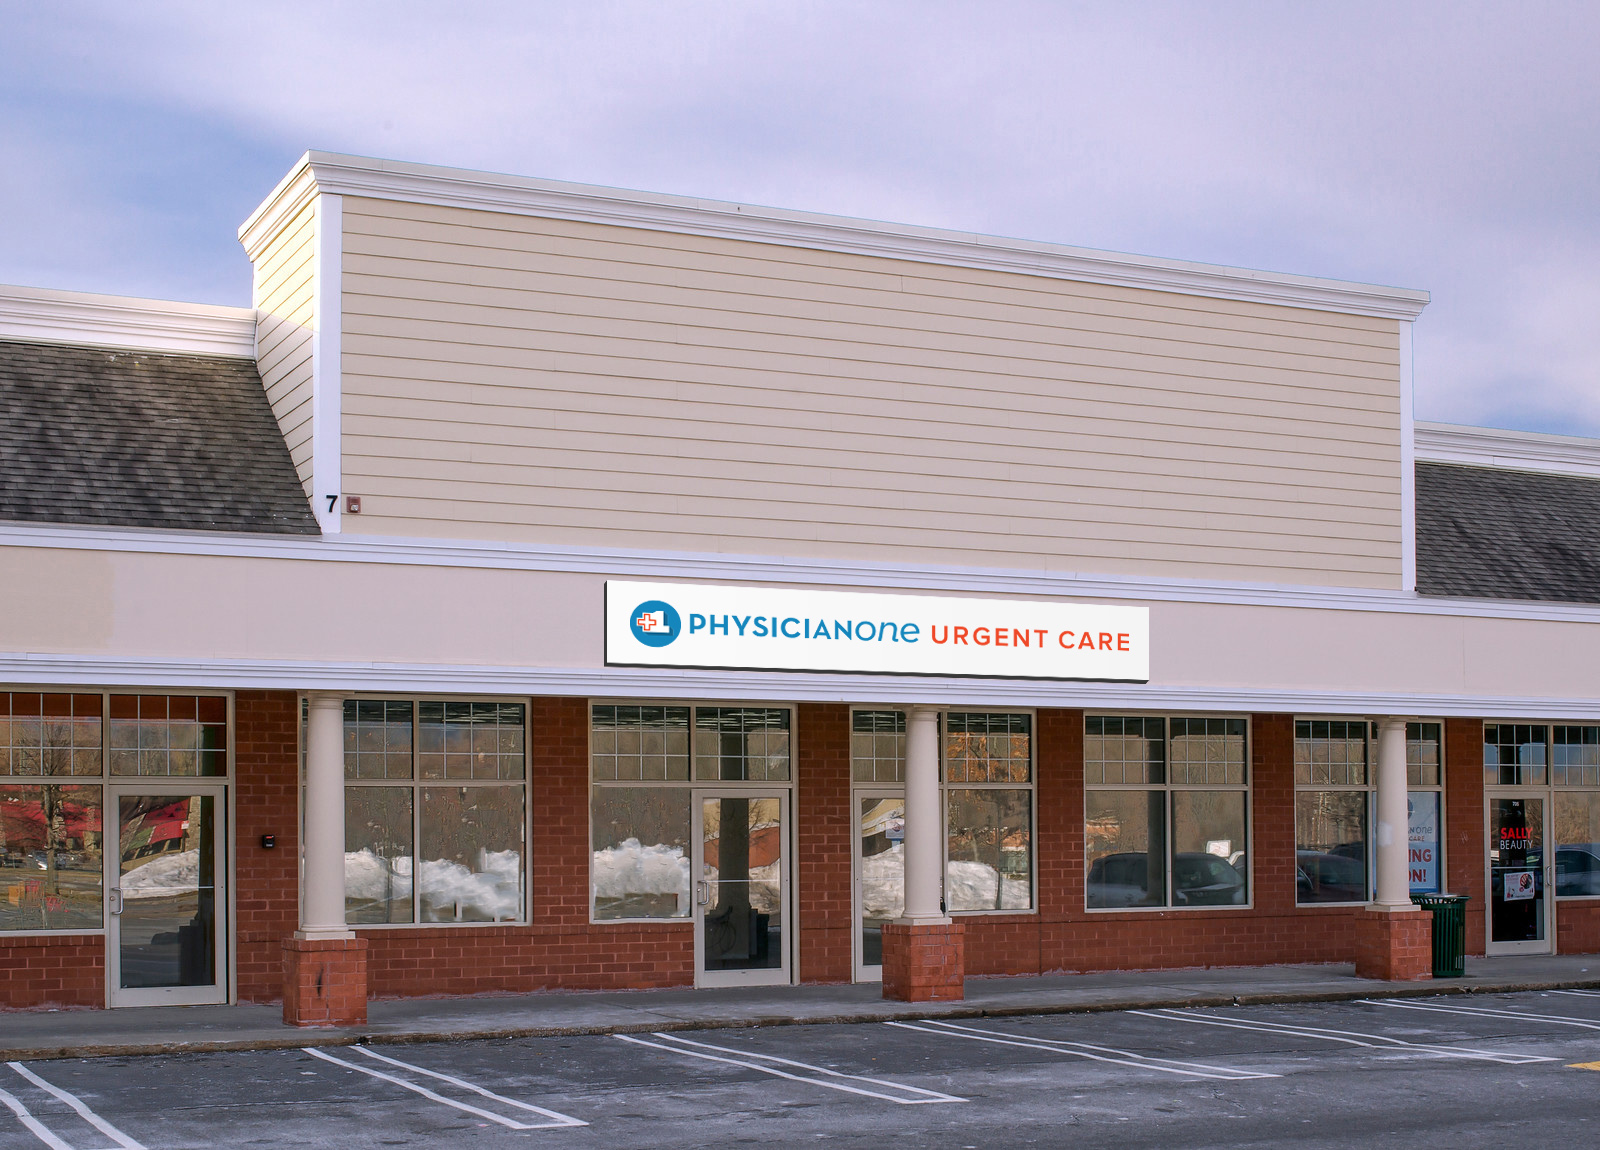 PhysicianOne Urgent Care - Somers - Urgent Care Solv in Baldwin Place, NY